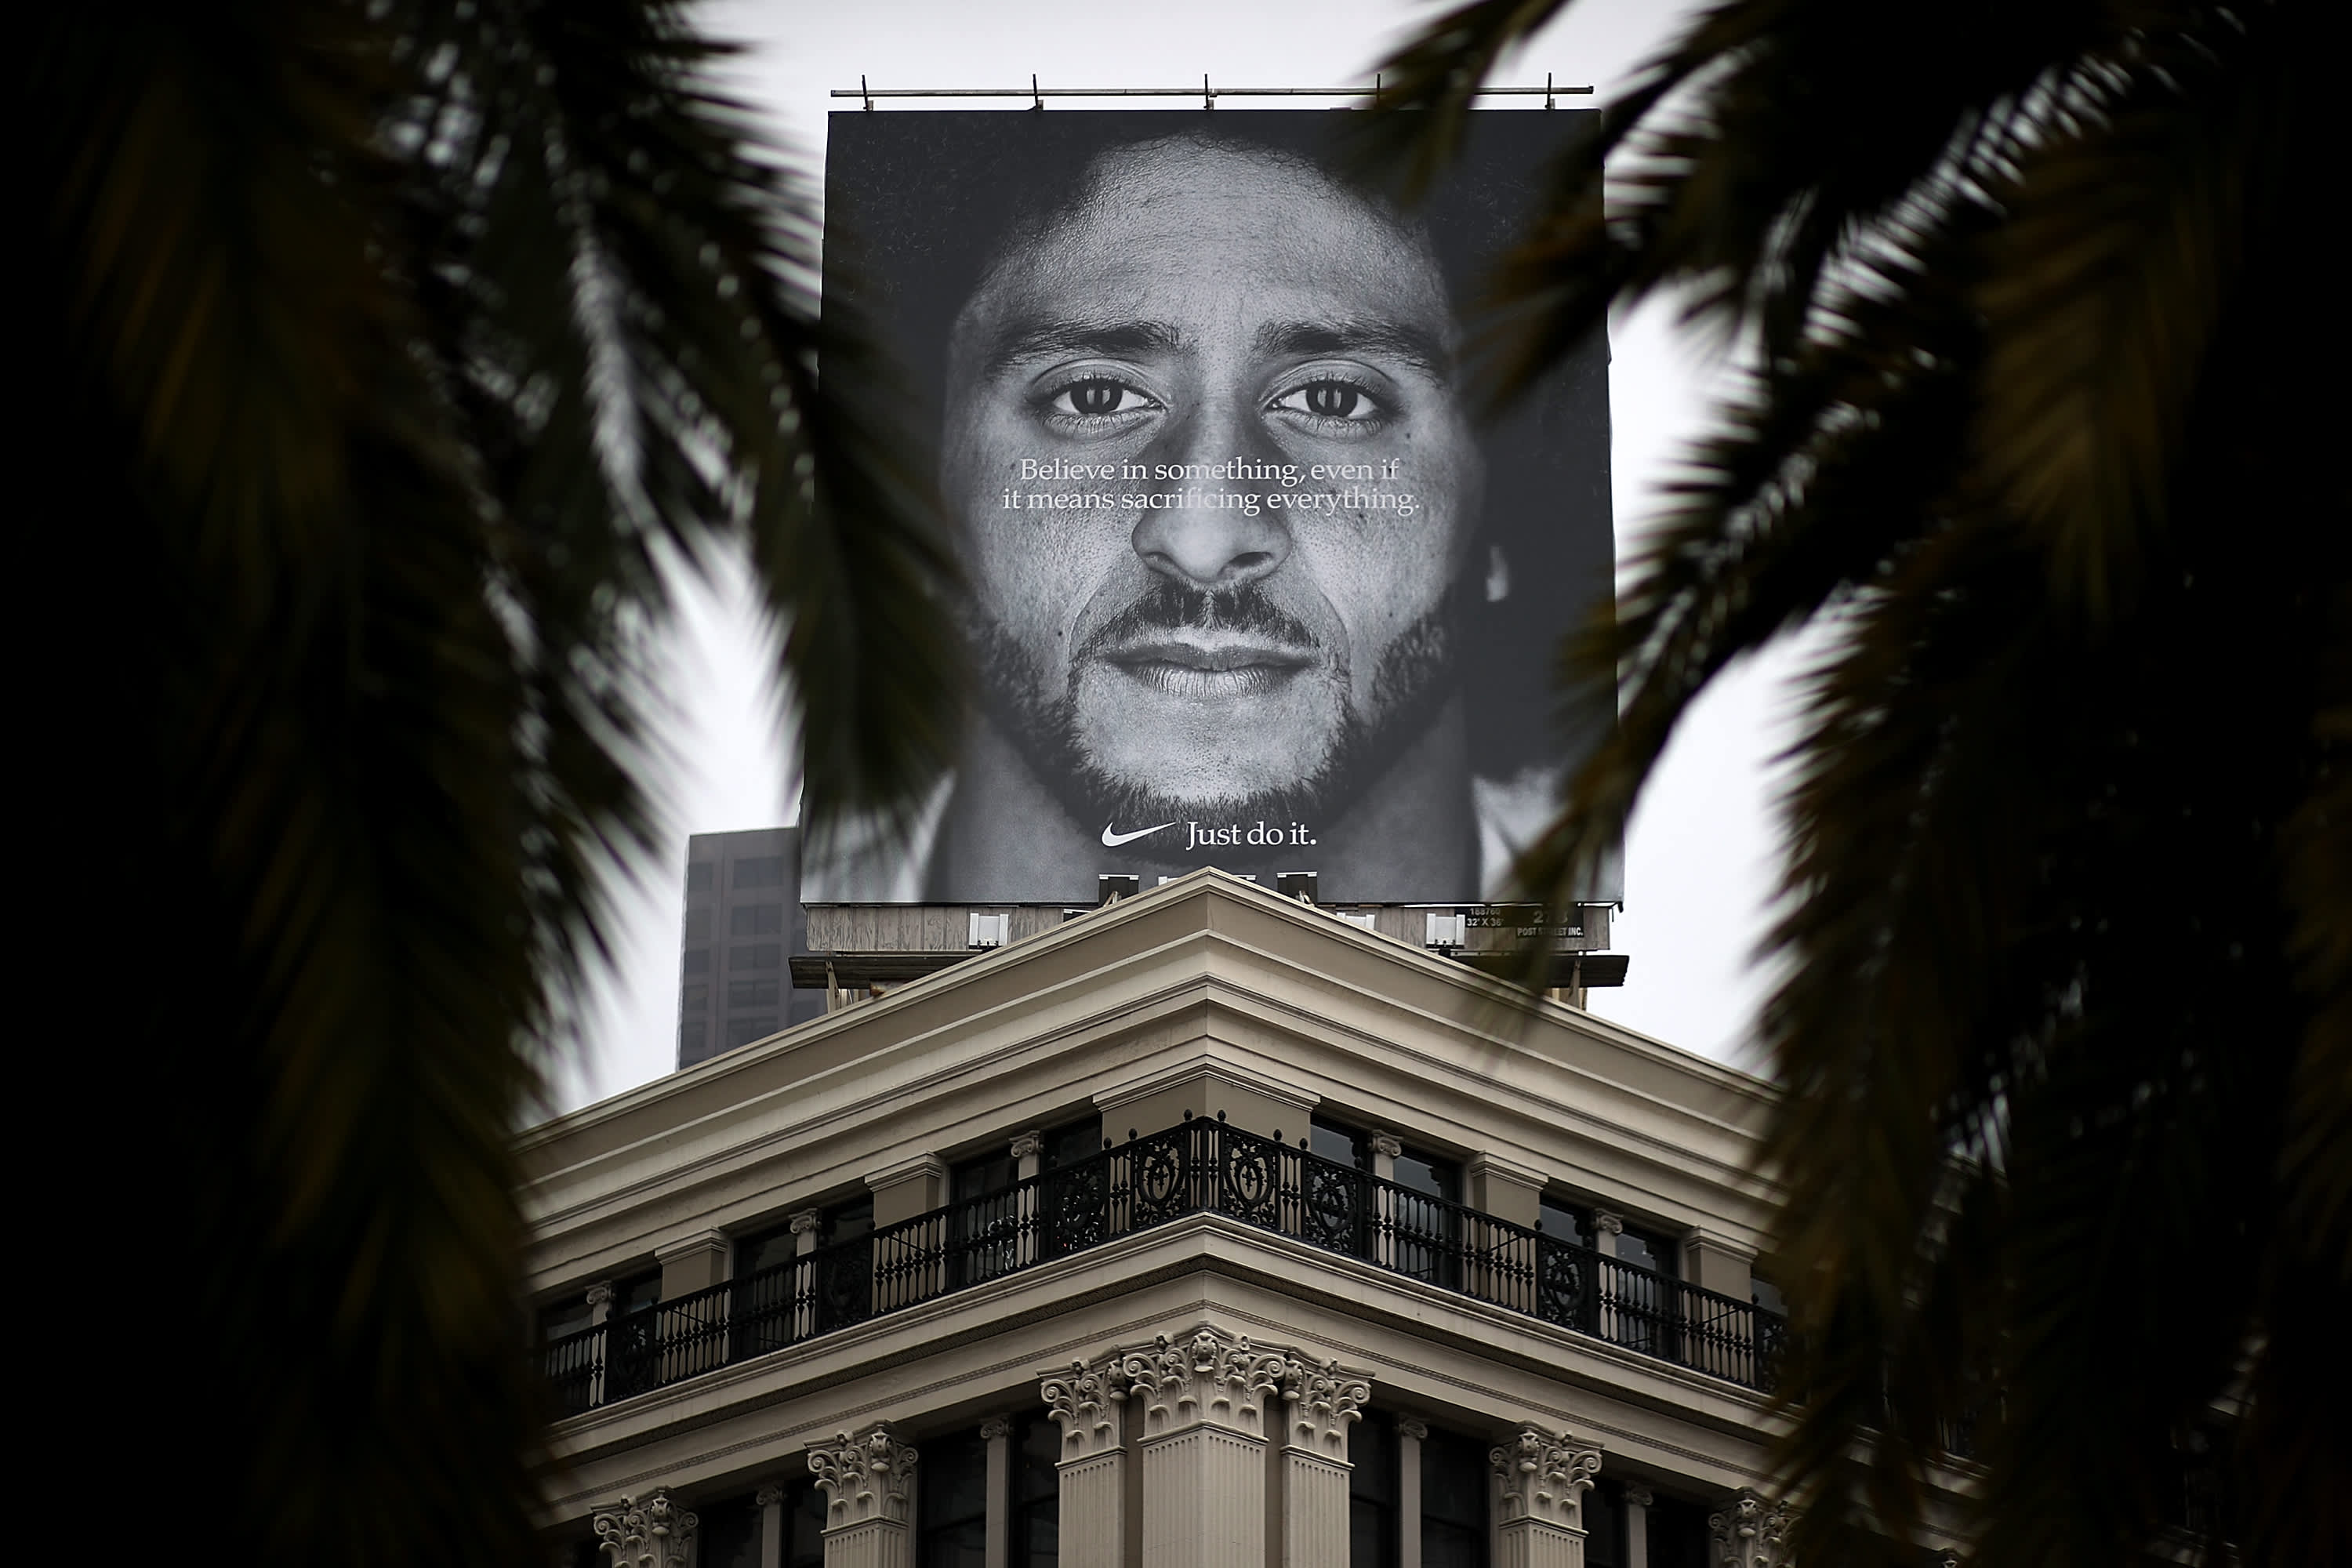 Nike S Colin Kaepernick Ad Created 163 5 Million In Media Exposure